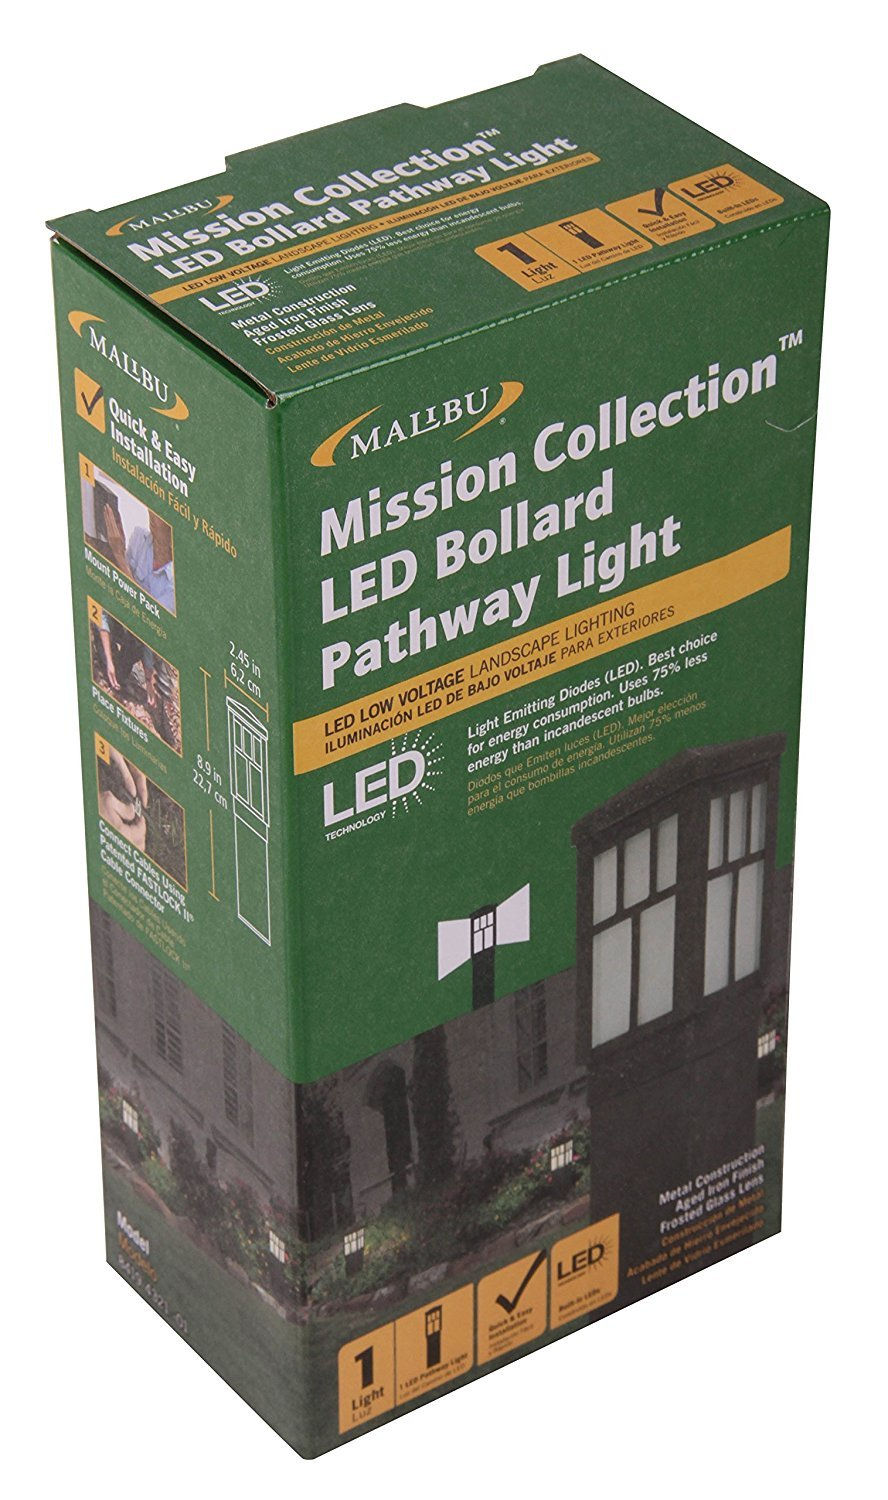 amazon com malibu mission collection led bollard pathway light led